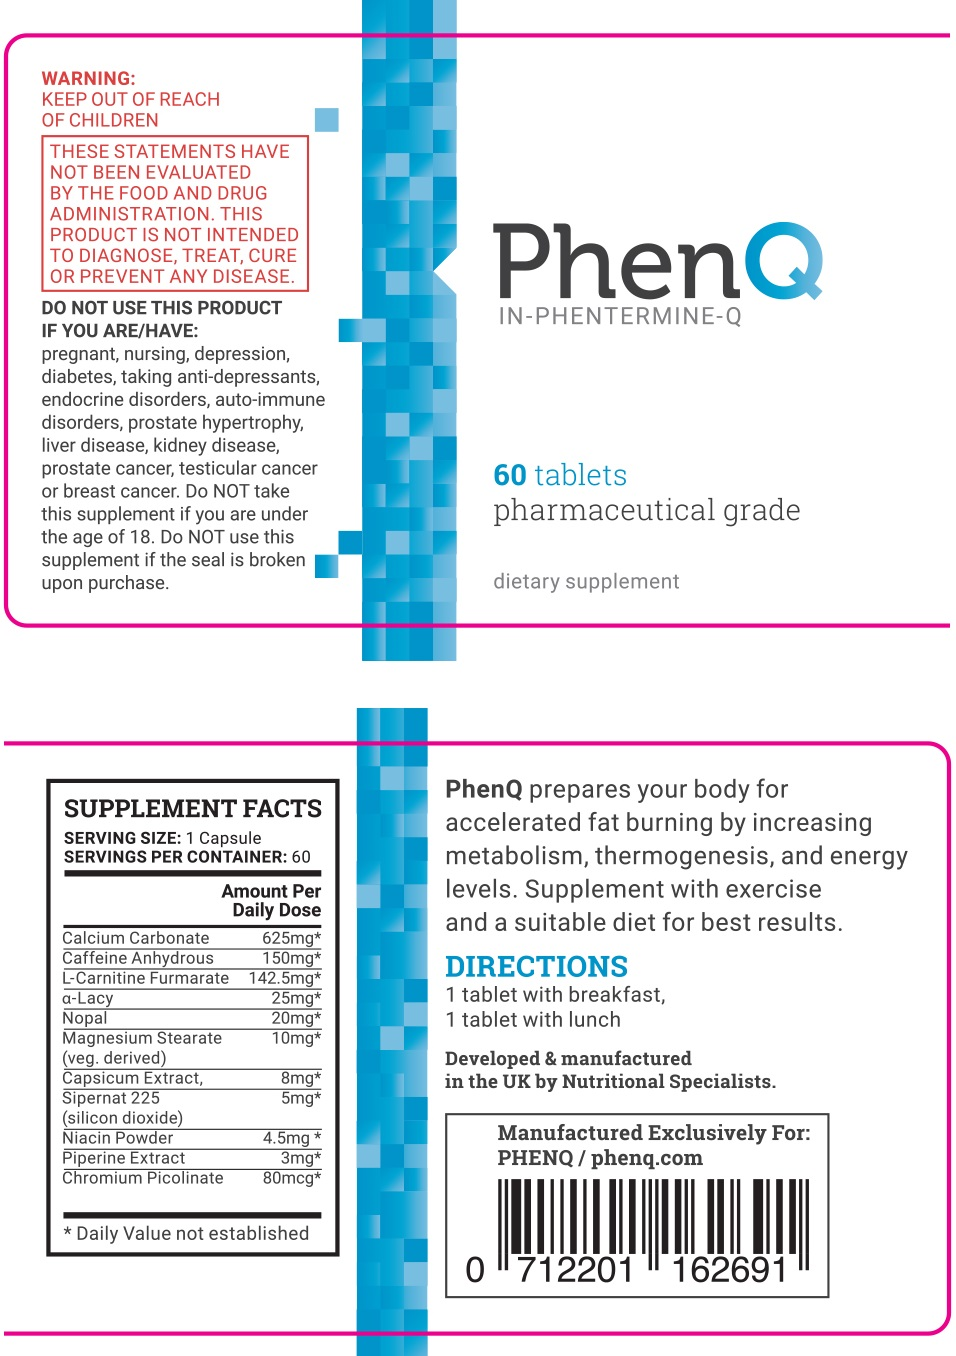 phenq ingredients posologie contre-indications